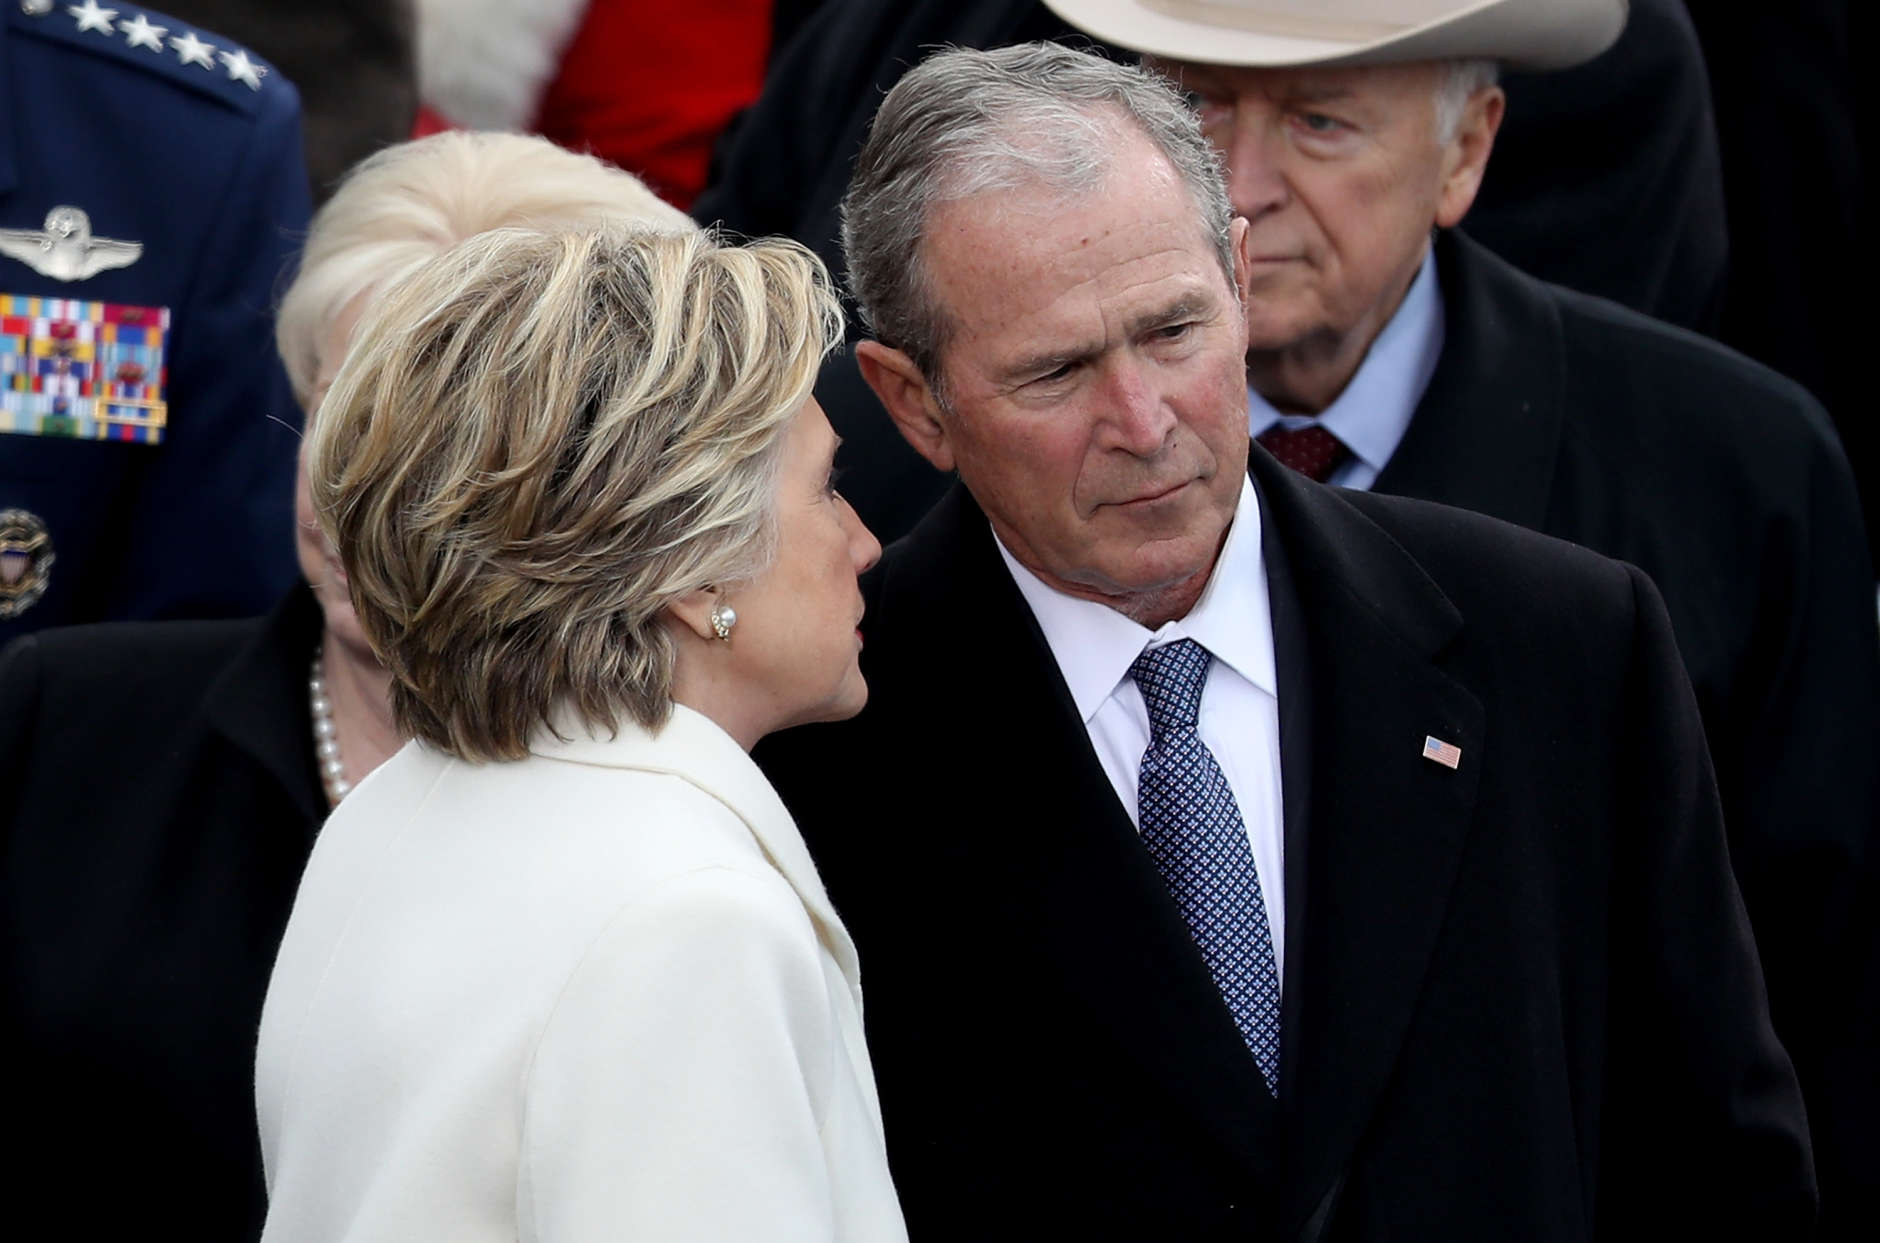 WASHINGTON, DC - JANUARY 20: Former Democratic presidential nominee Hillary Clinton whispers to former President George W. Bush  on the West Front of the U.S. Capitol on January 20, 2017 in Washington, DC. In today's inauguration ceremony Donald J. Trump becomes the 45th president of the United States.  (Photo by Joe Raedle/Getty Images)